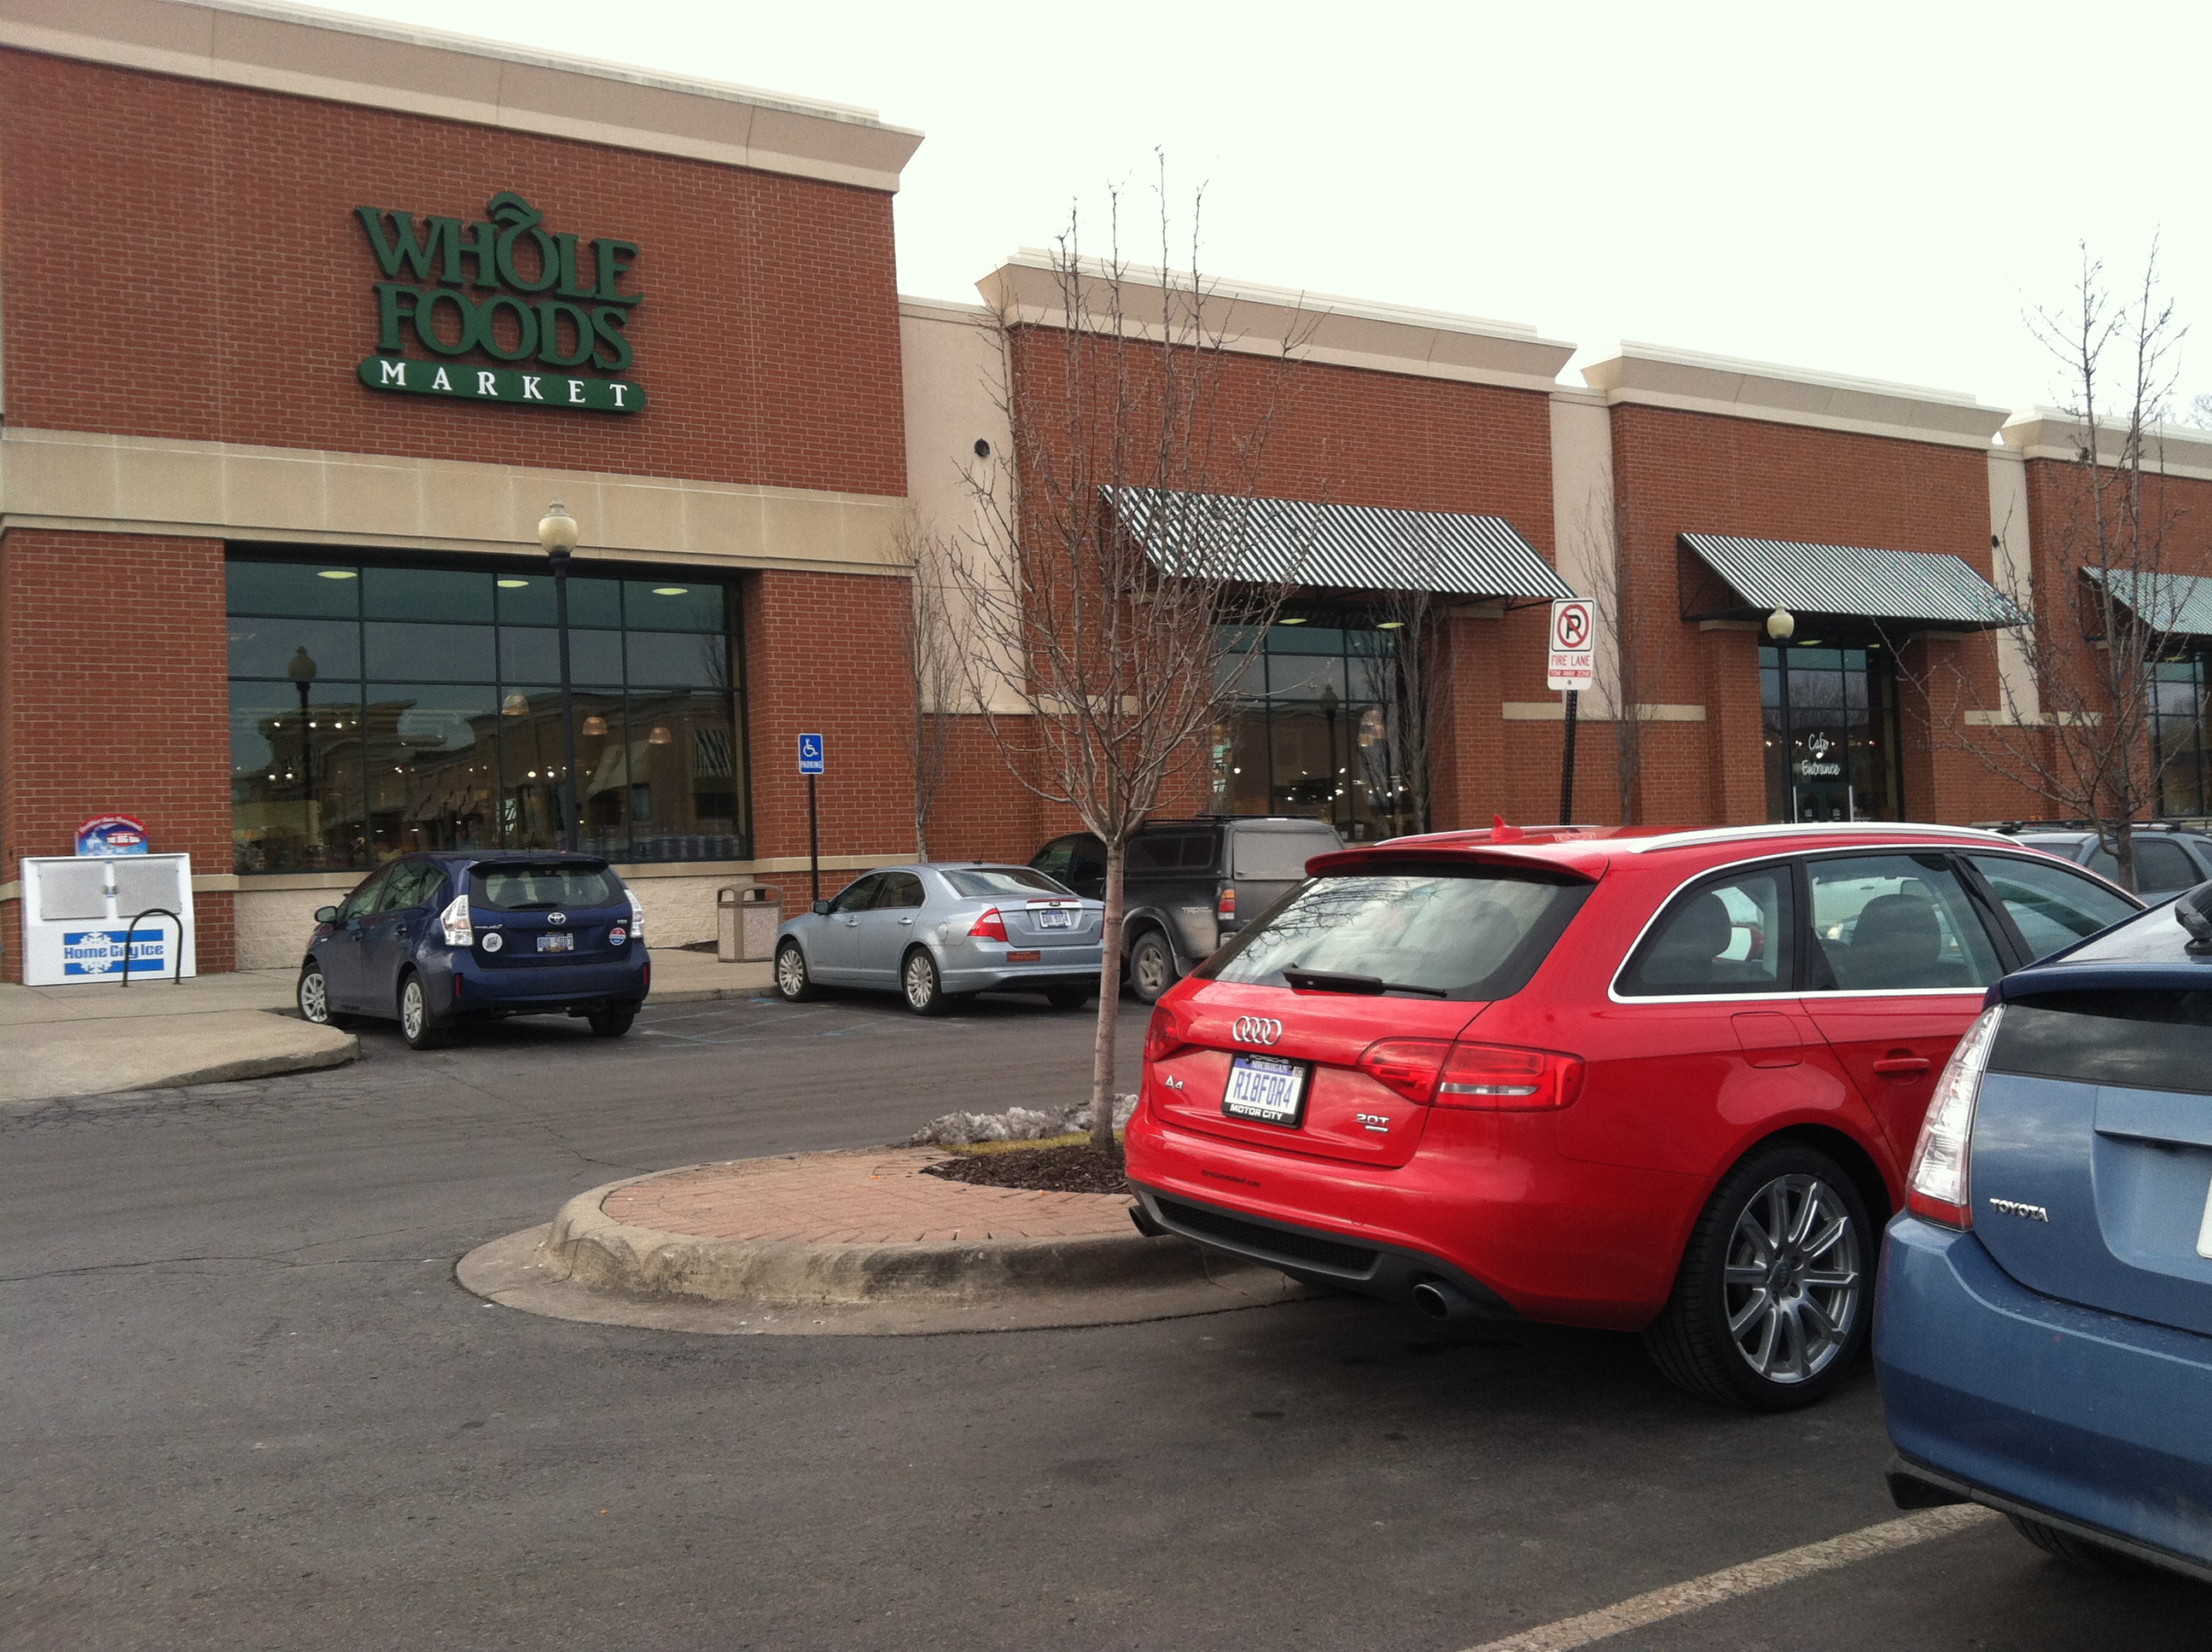 Braving the Whole Foods parking lot with my non-hybrid, non-subcompact foreign car. Say a prayer to the Saint of Dings!